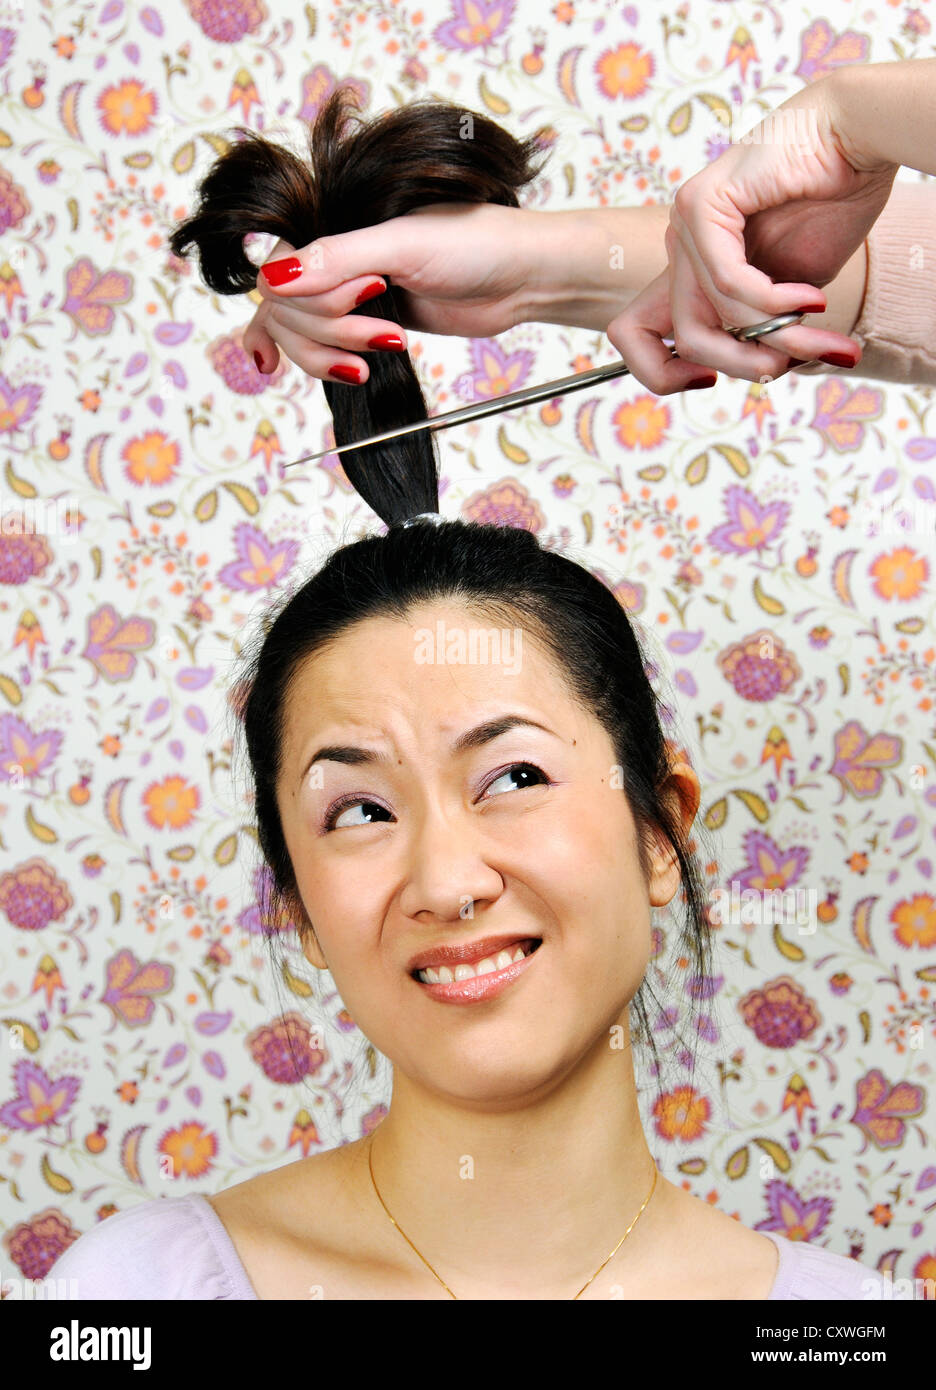 A Fearful Woman Having Her Ponytail Cut Off Stock Photo